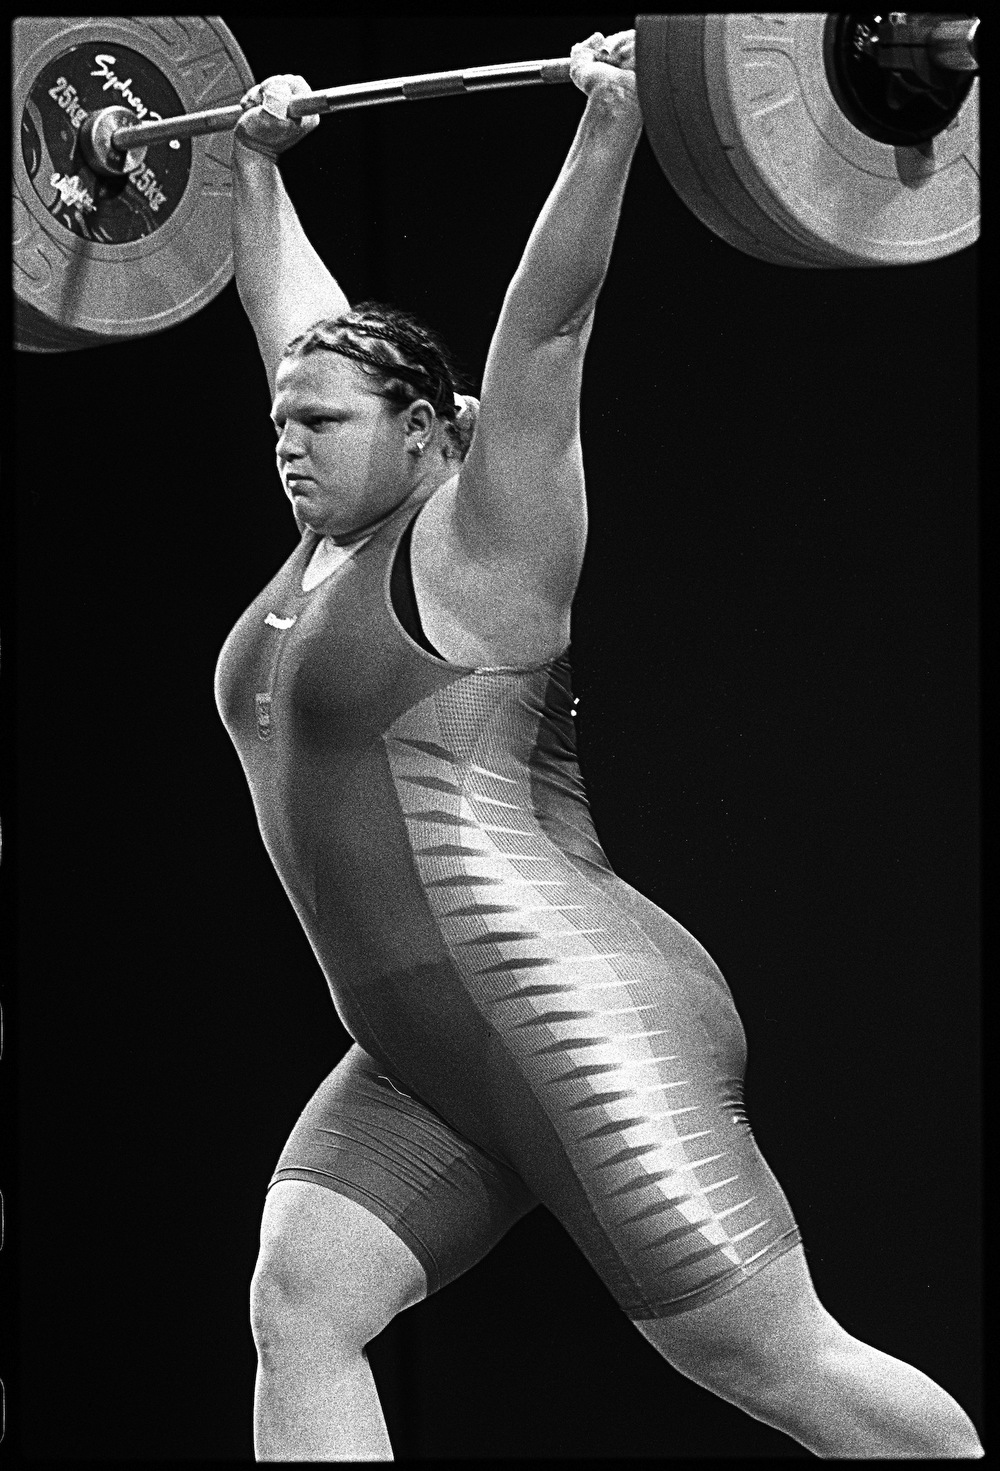 Women's Weightlifting. Sydney, Australia. September 2000.  Inquire about this image